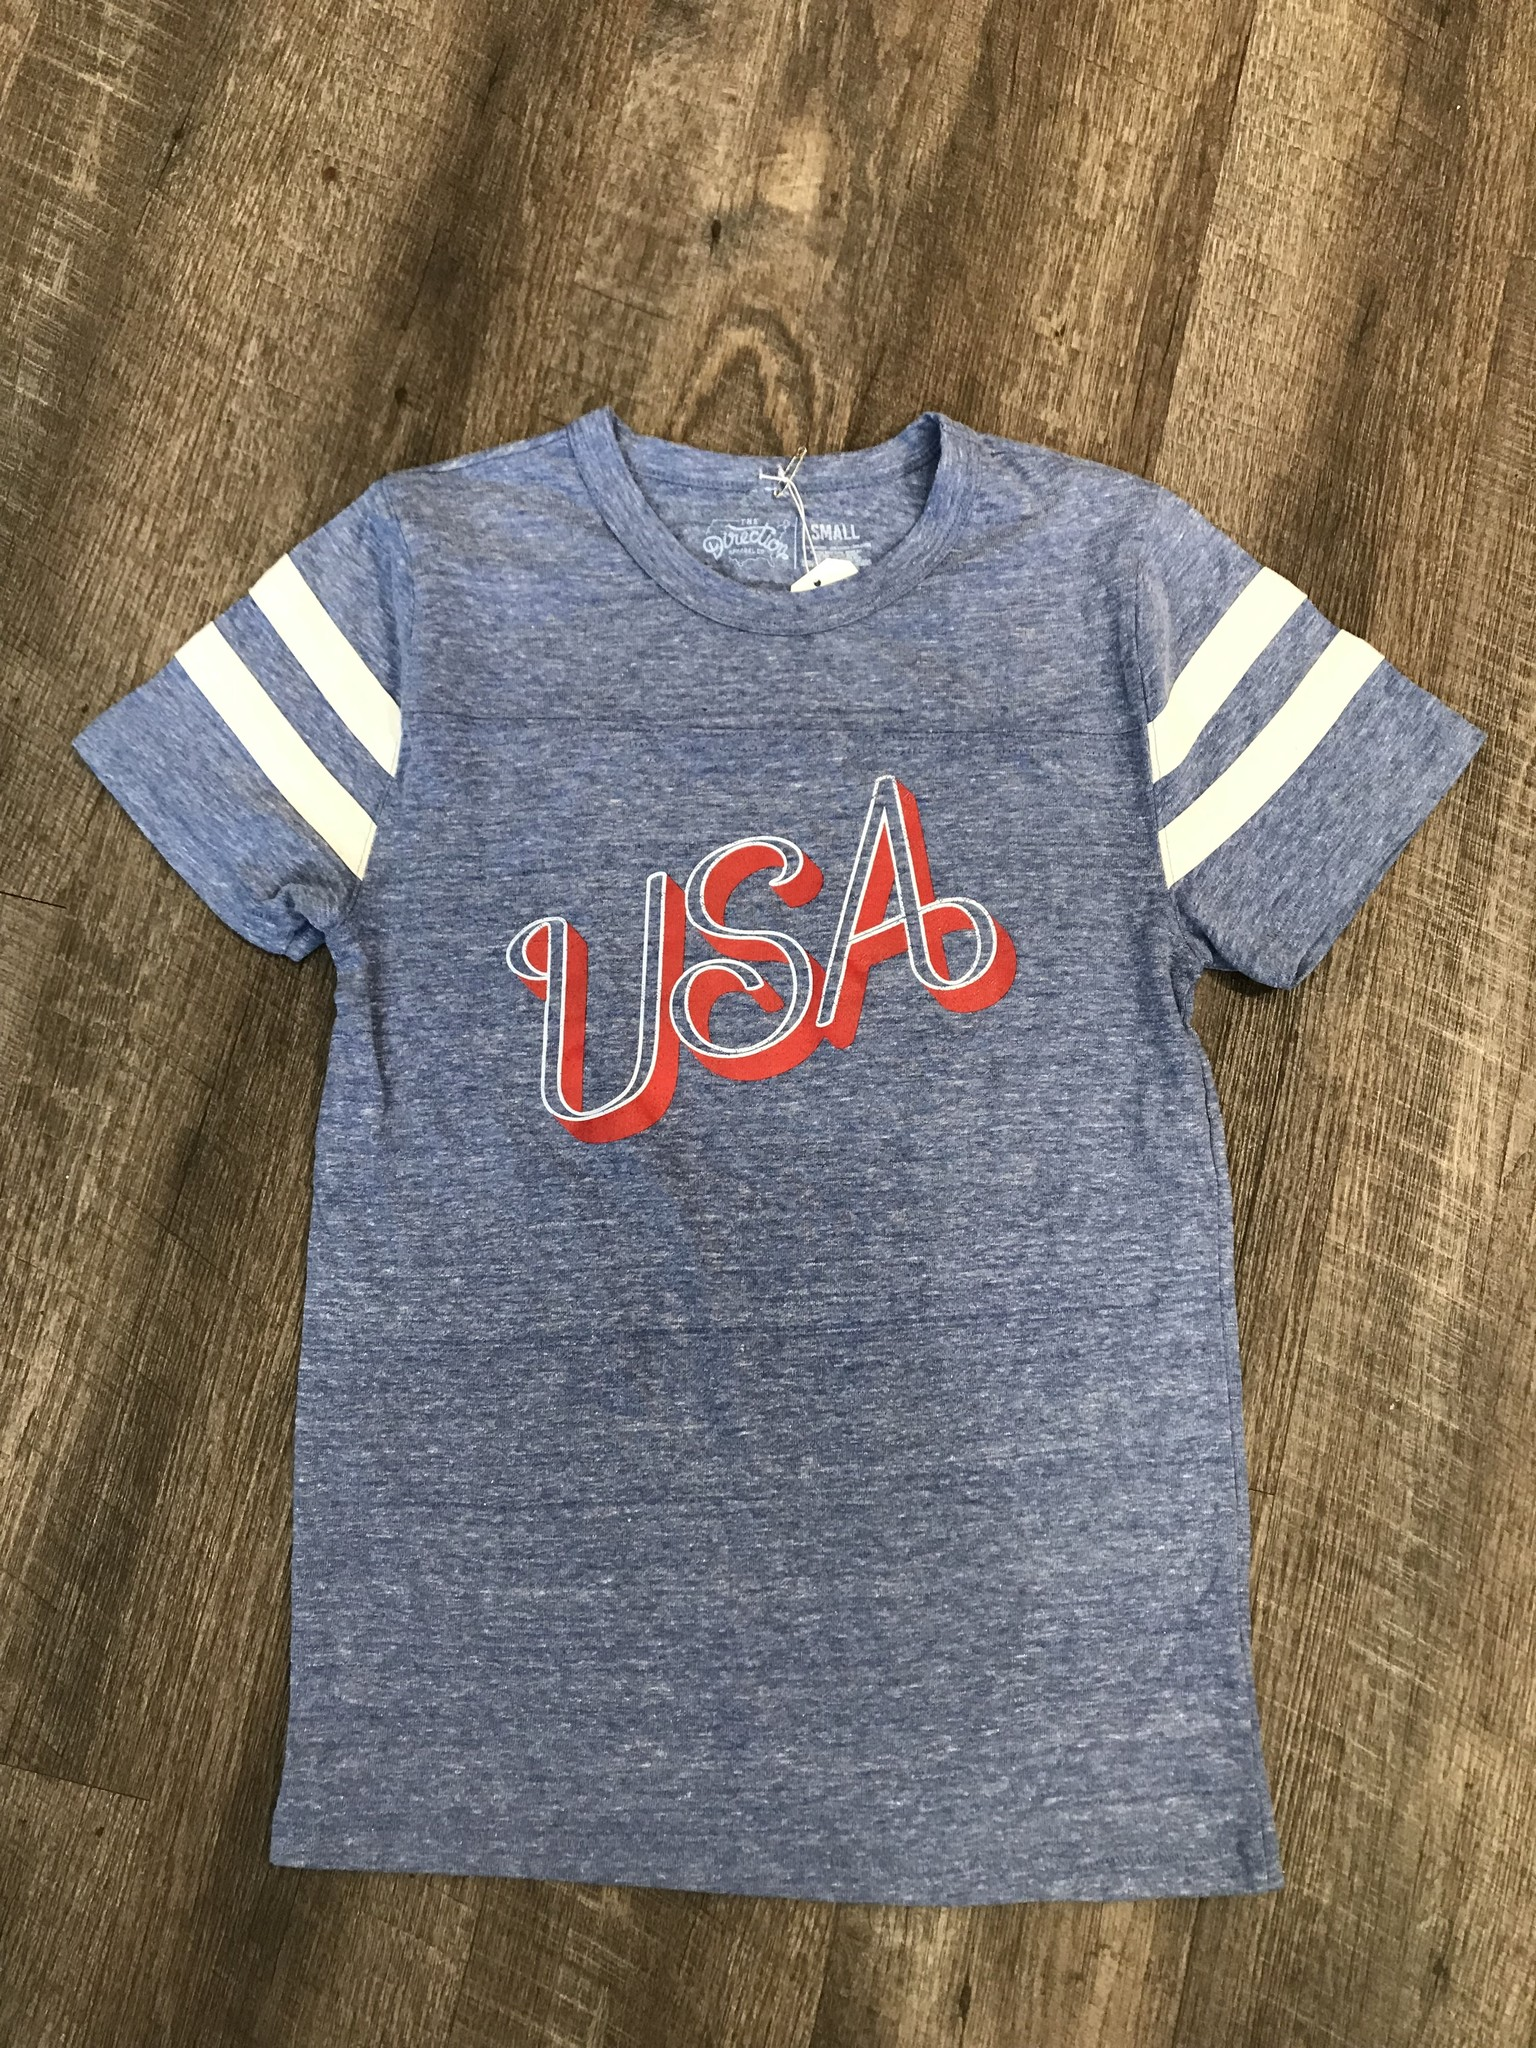 The Direction USA Jersey Tee